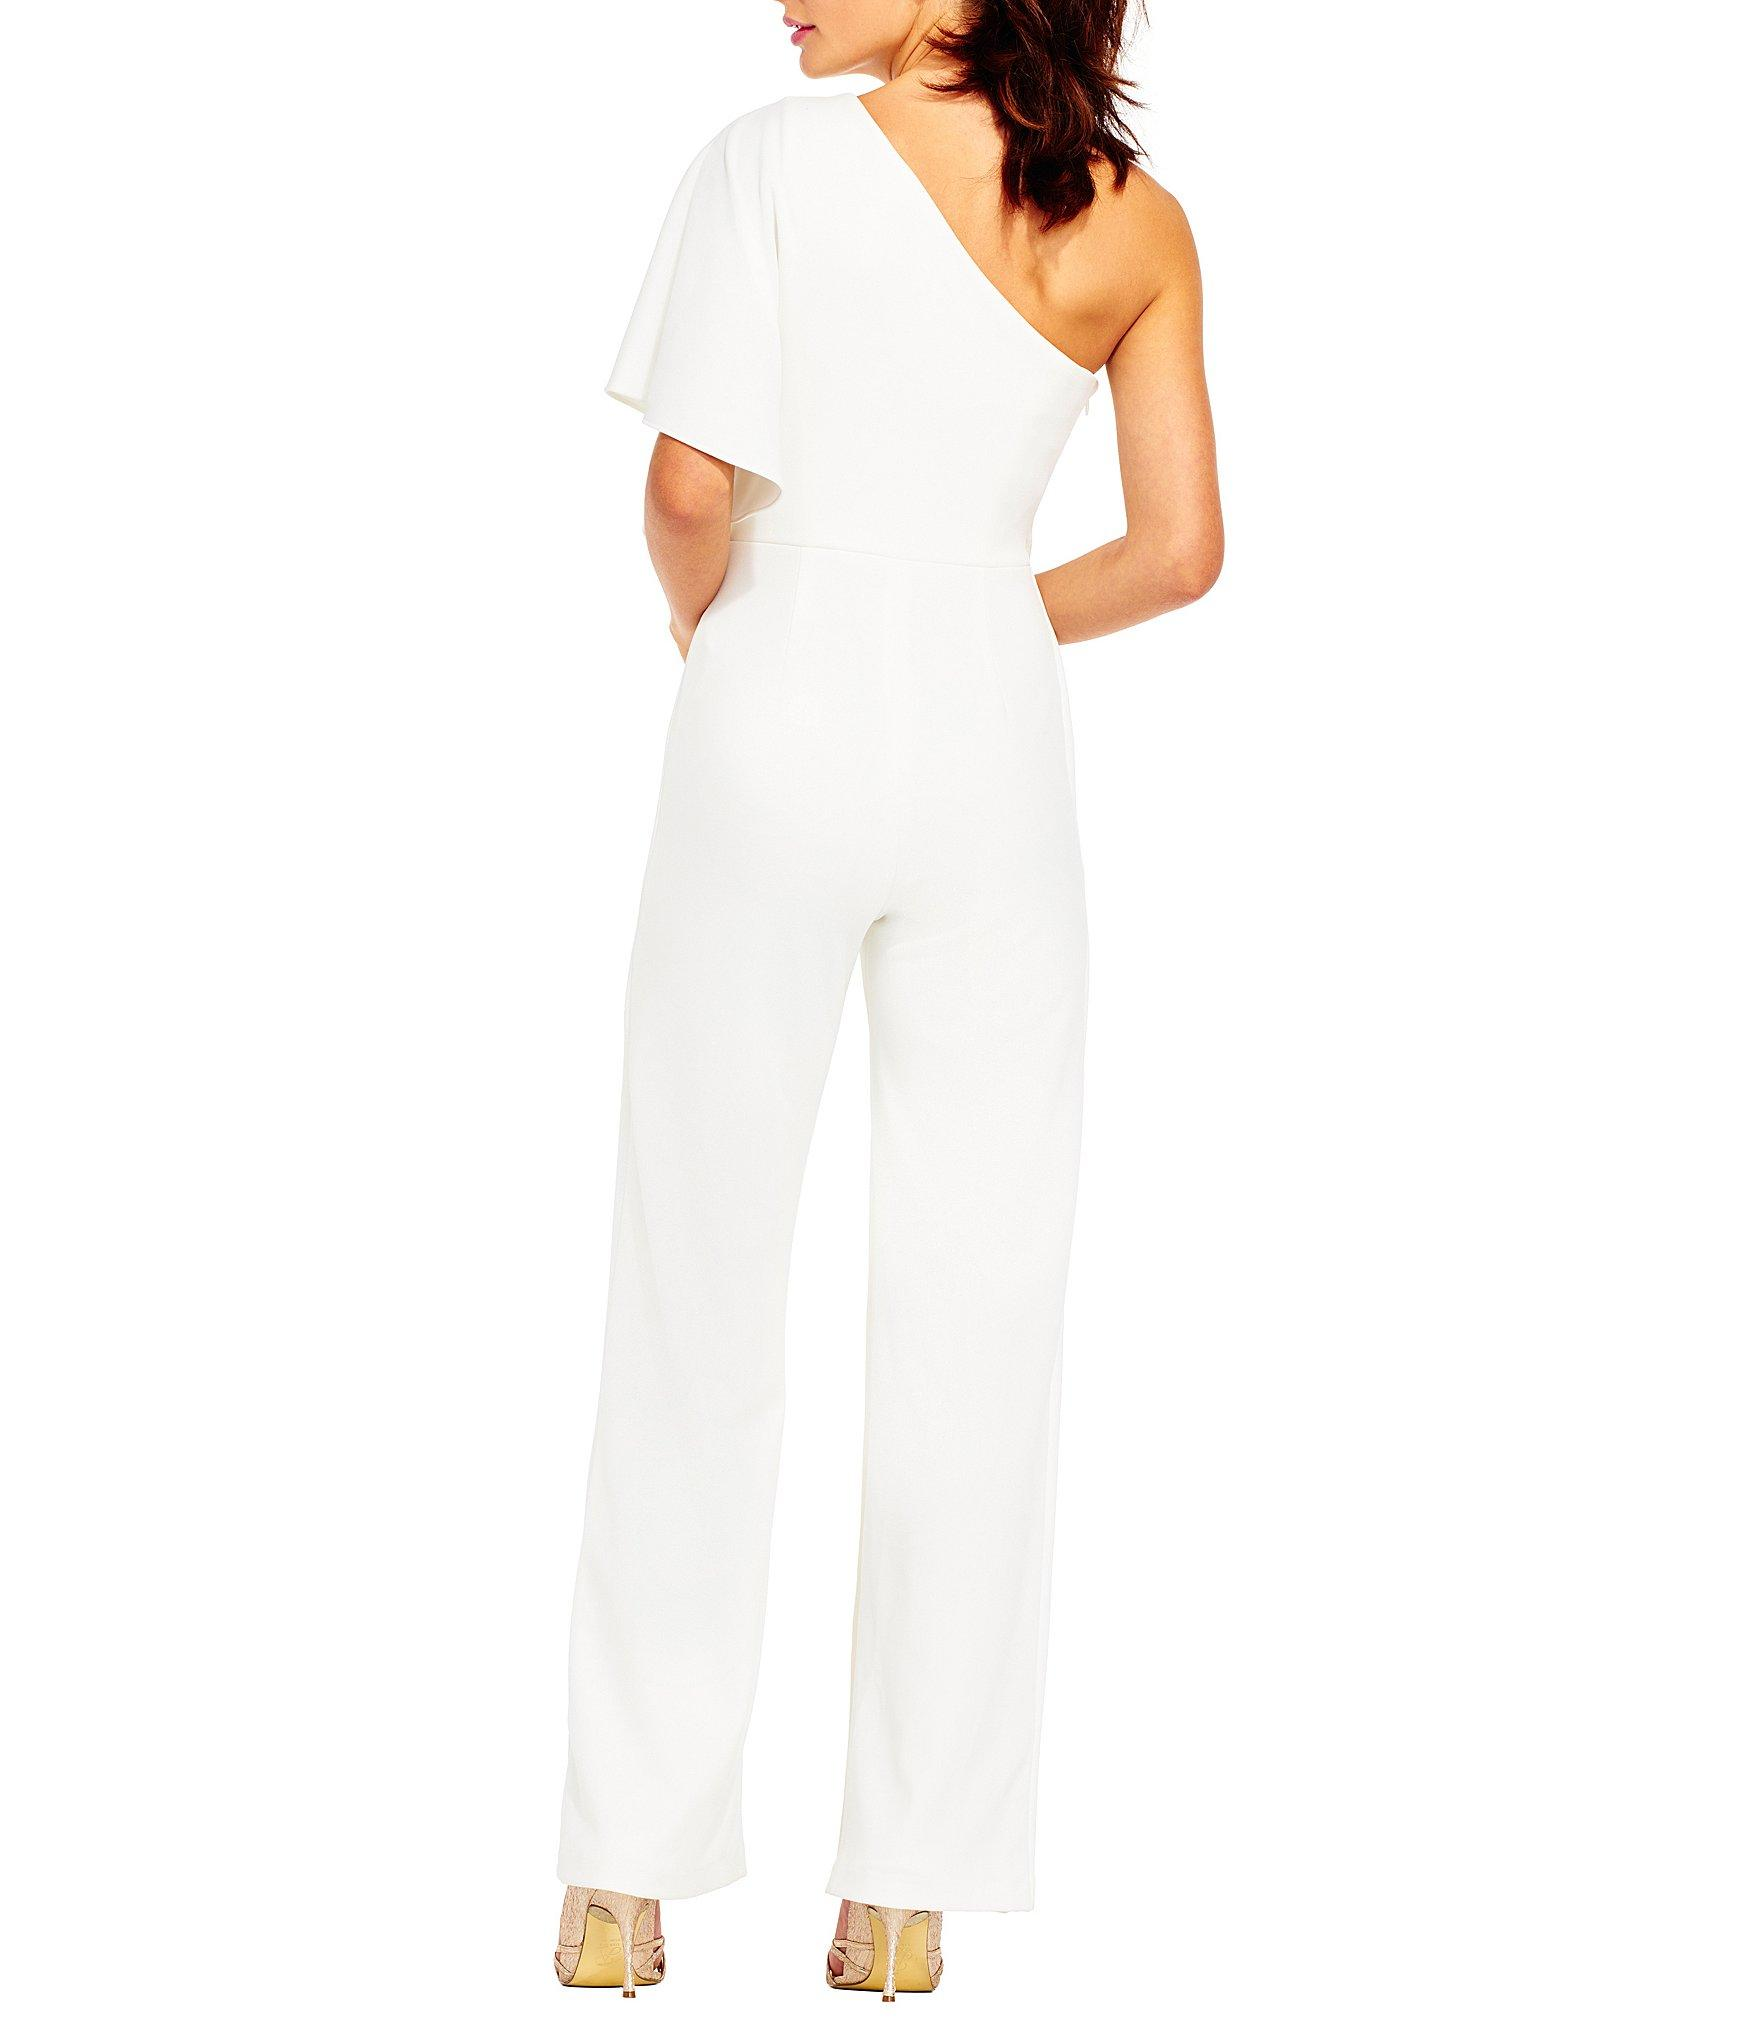 fe52617035f9 Adrianna Papell - White Crepe One Shoulder Jumpsuit - Lyst. View fullscreen